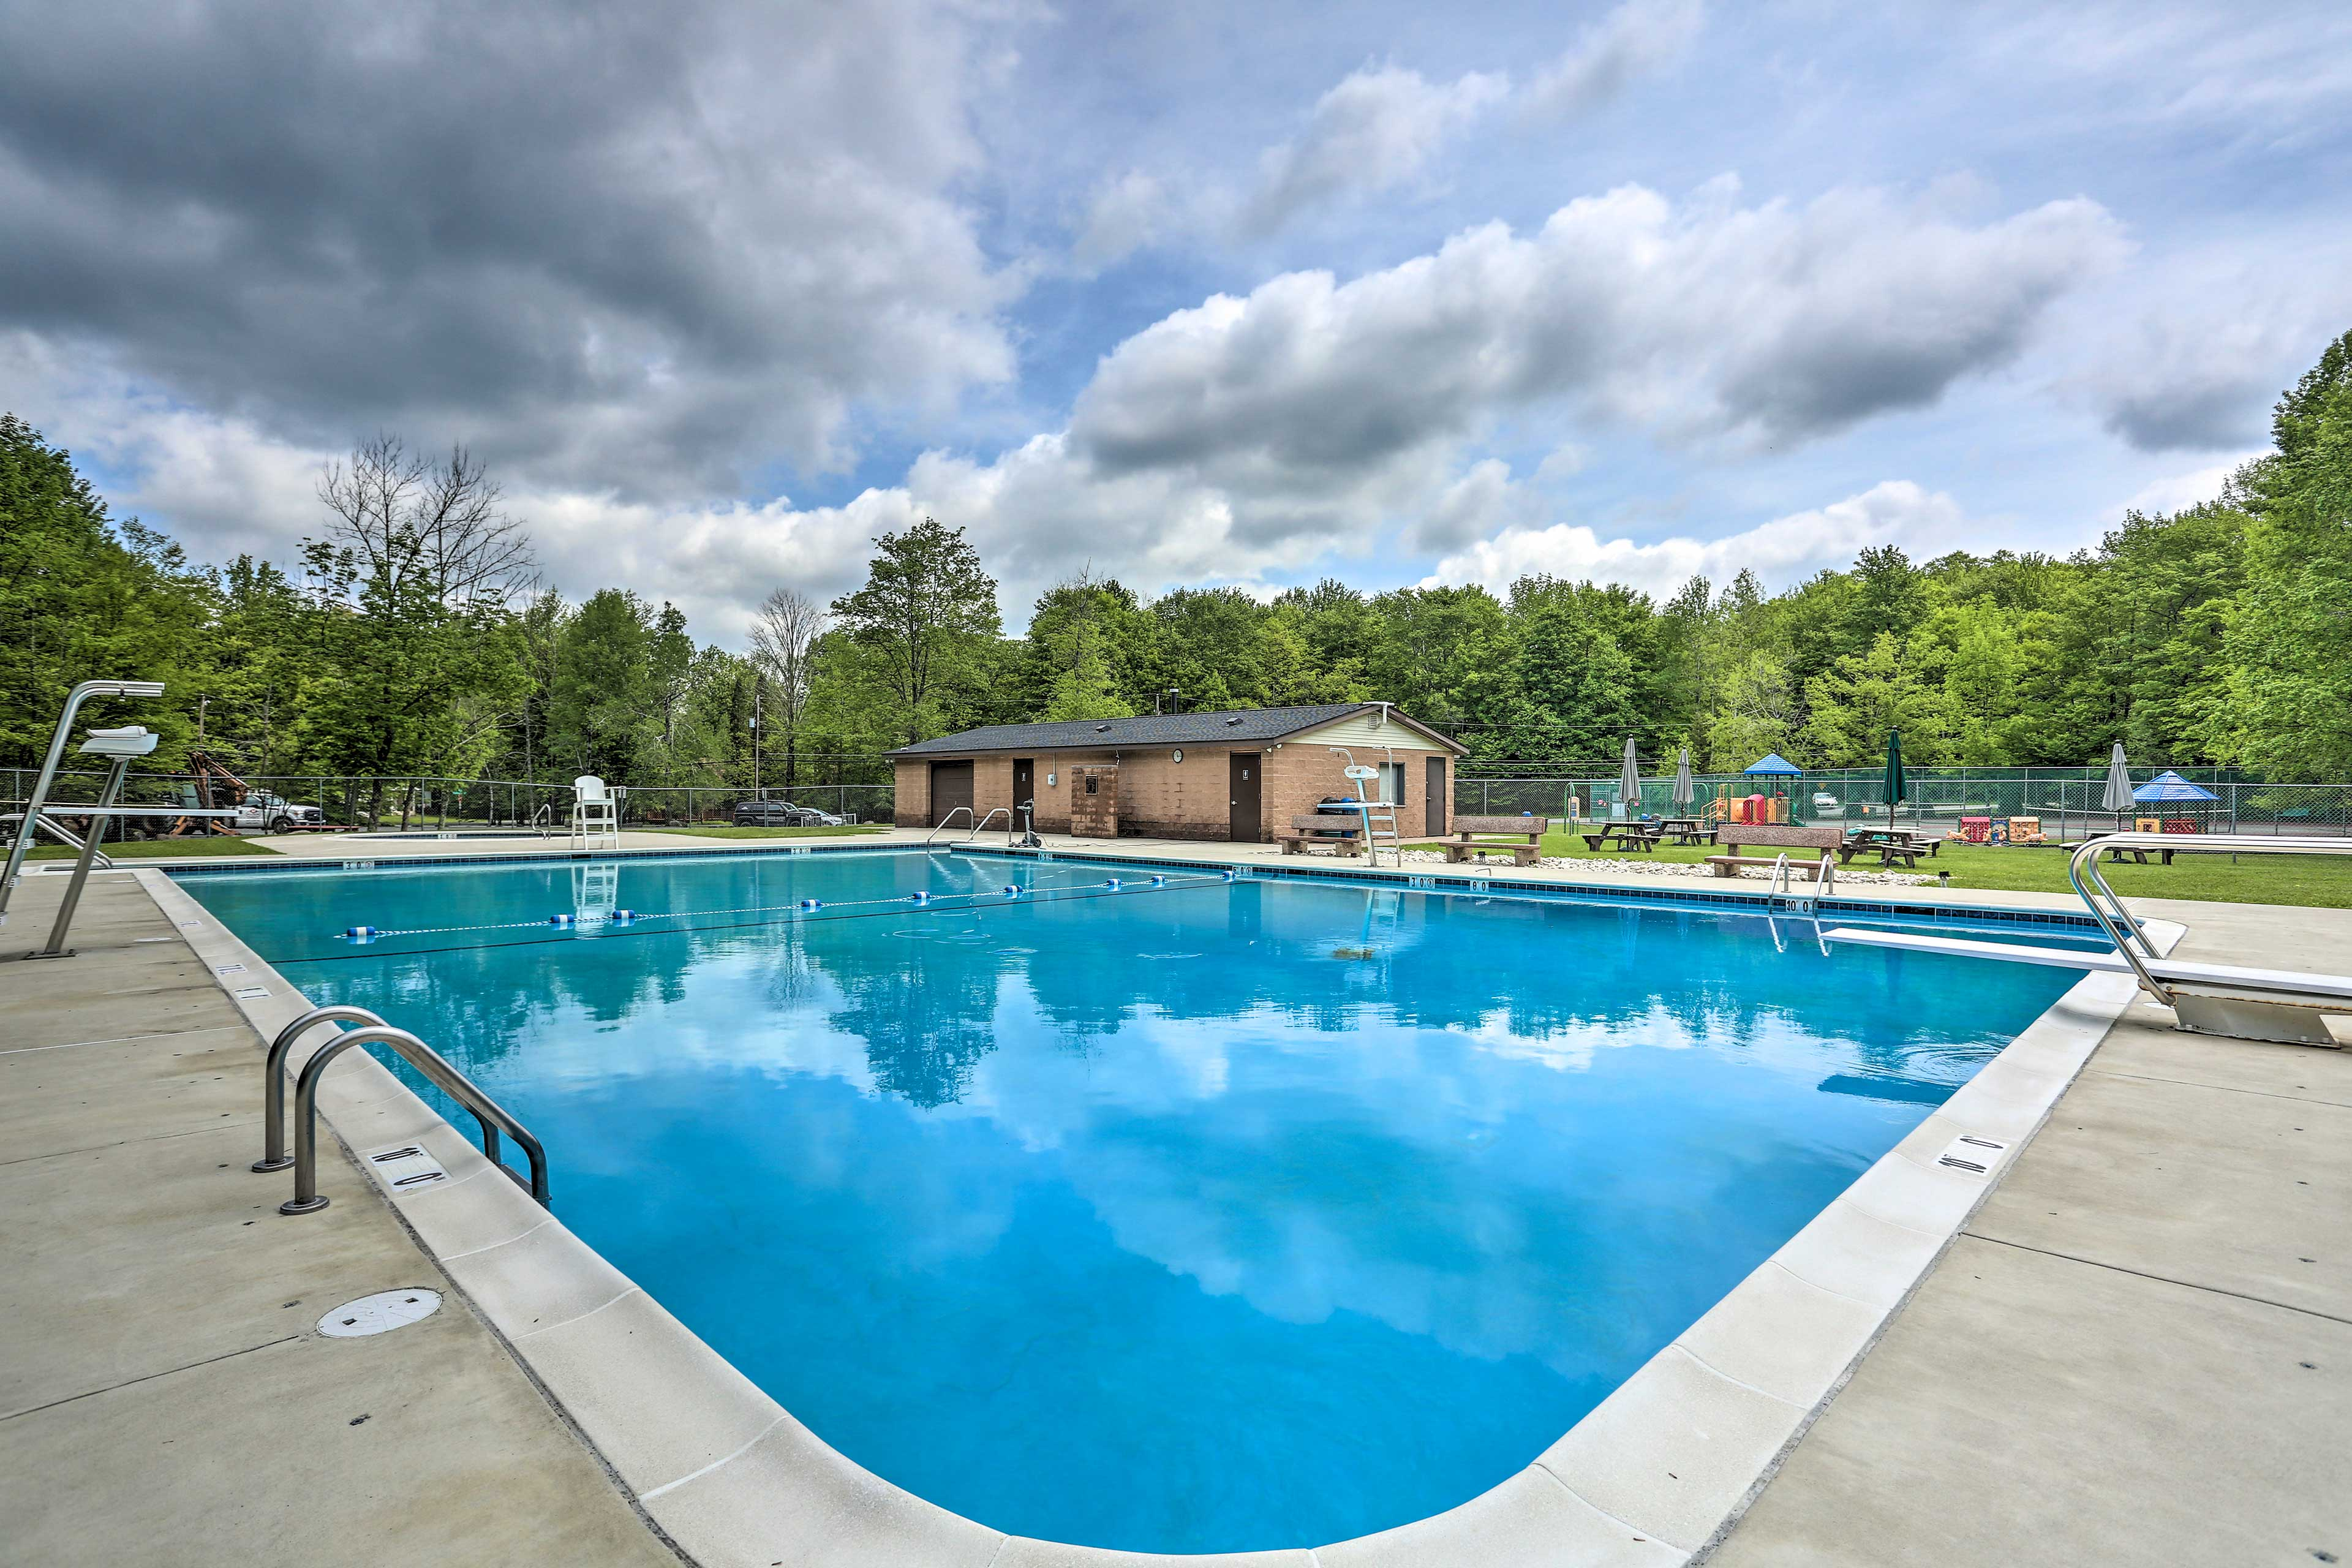 Make a splash at the outdoor swimming pool!